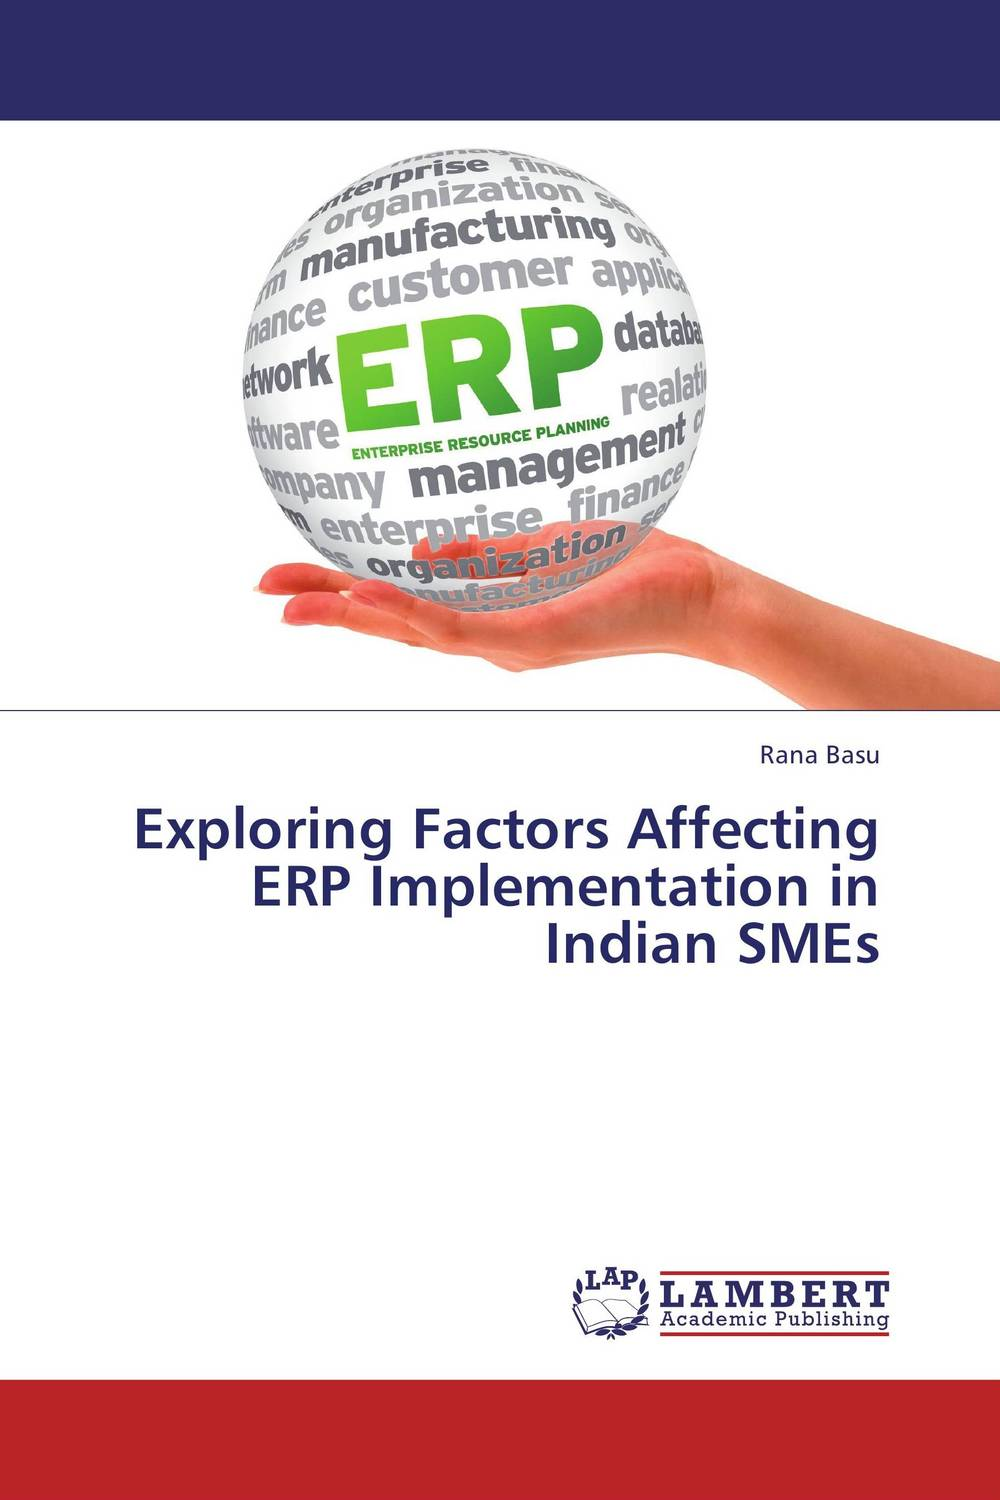 Exploring Factors Affecting ERP Implementation in Indian SMEs implementation of erp fifo